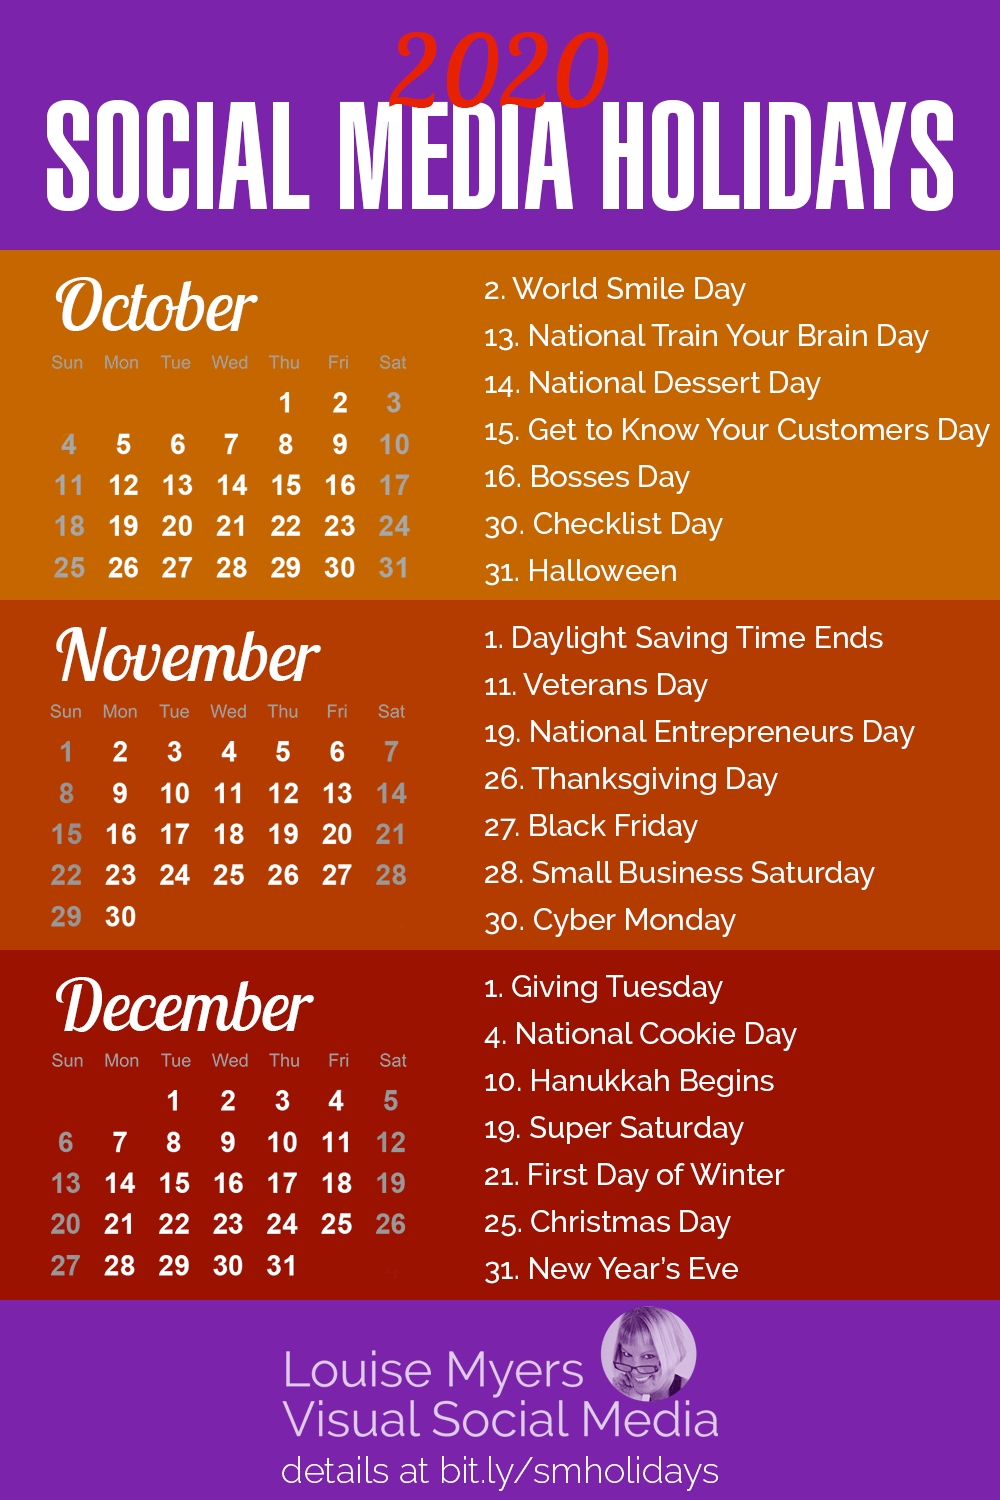 84 Social Media Holidays You Need In 2020: Indispensable!-Monthly Wellness Topics 2020